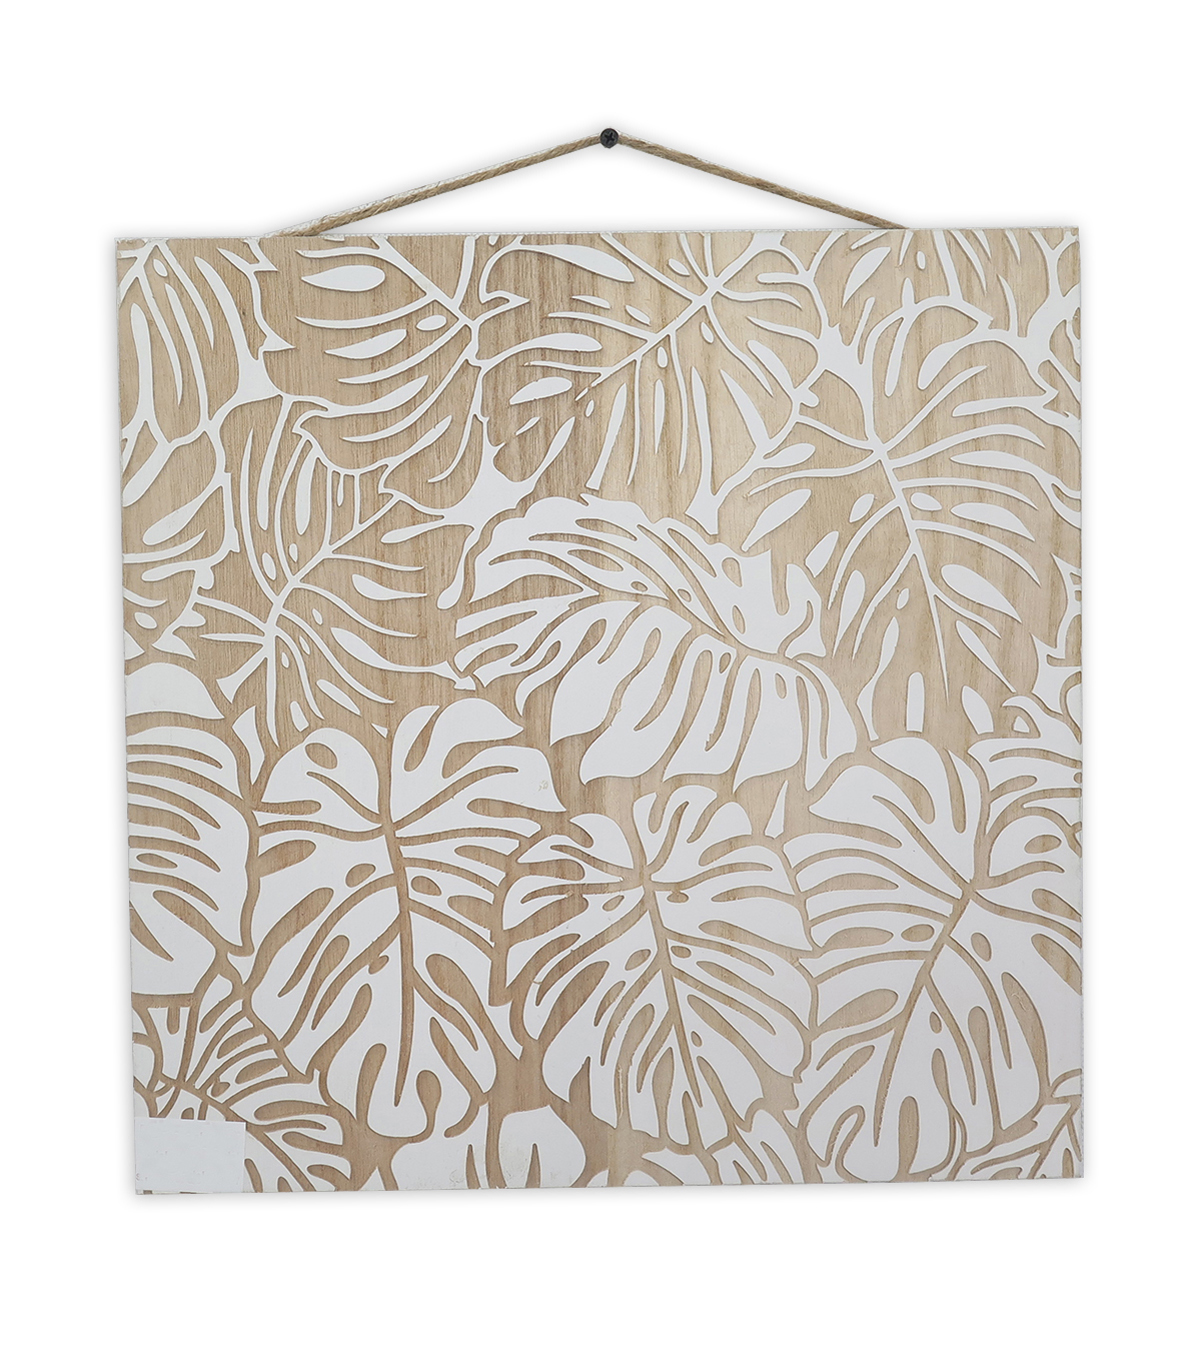 Summer Sol Wood Wall Decor-Leaf Print